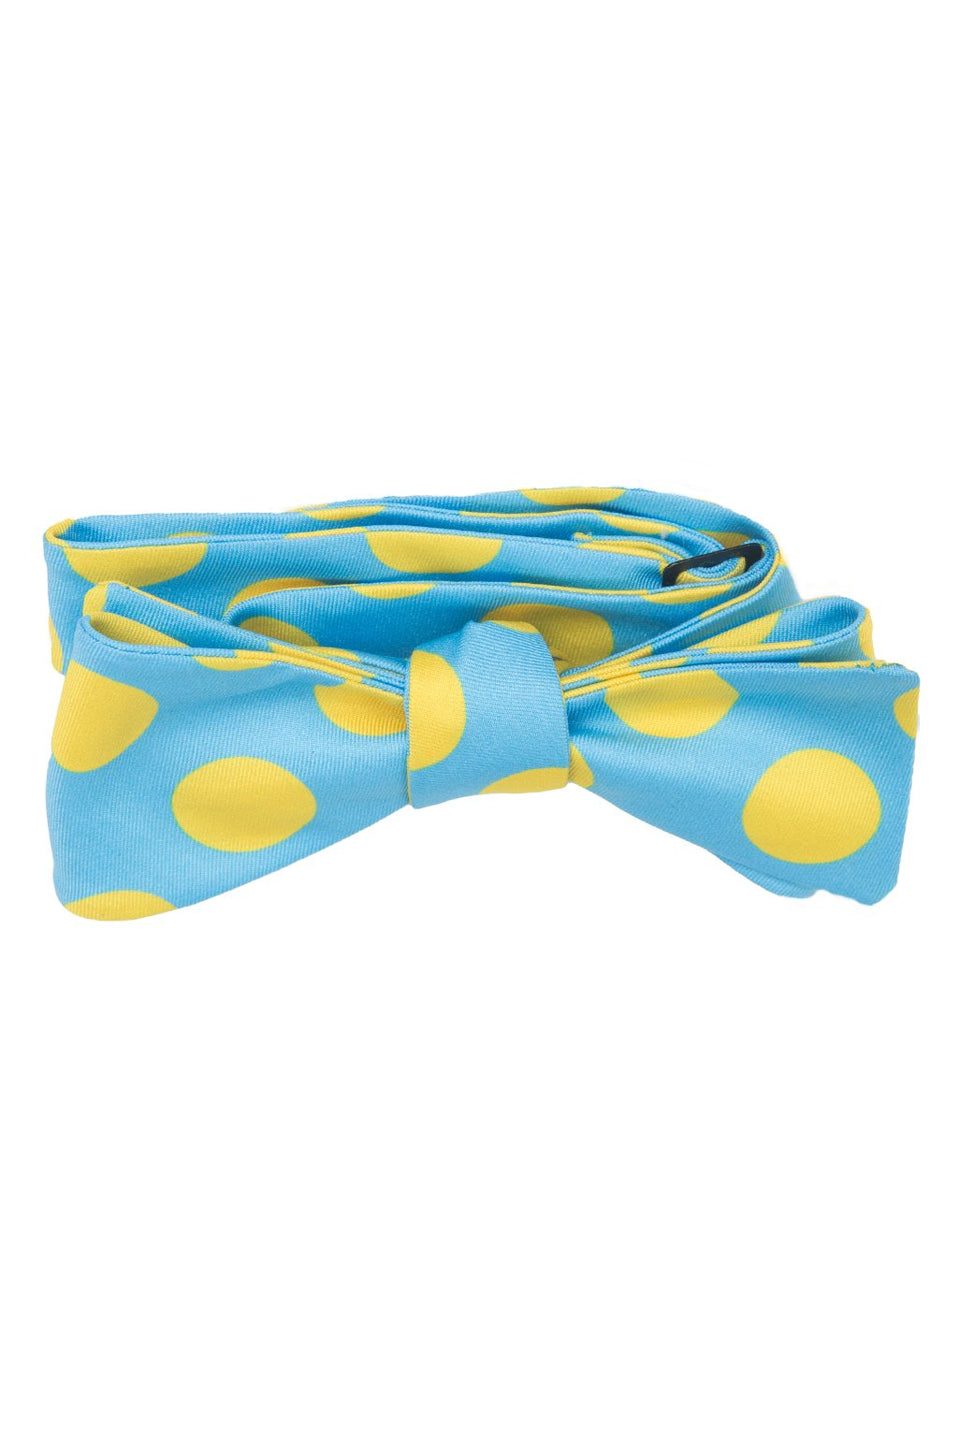 Roger Bow Tie